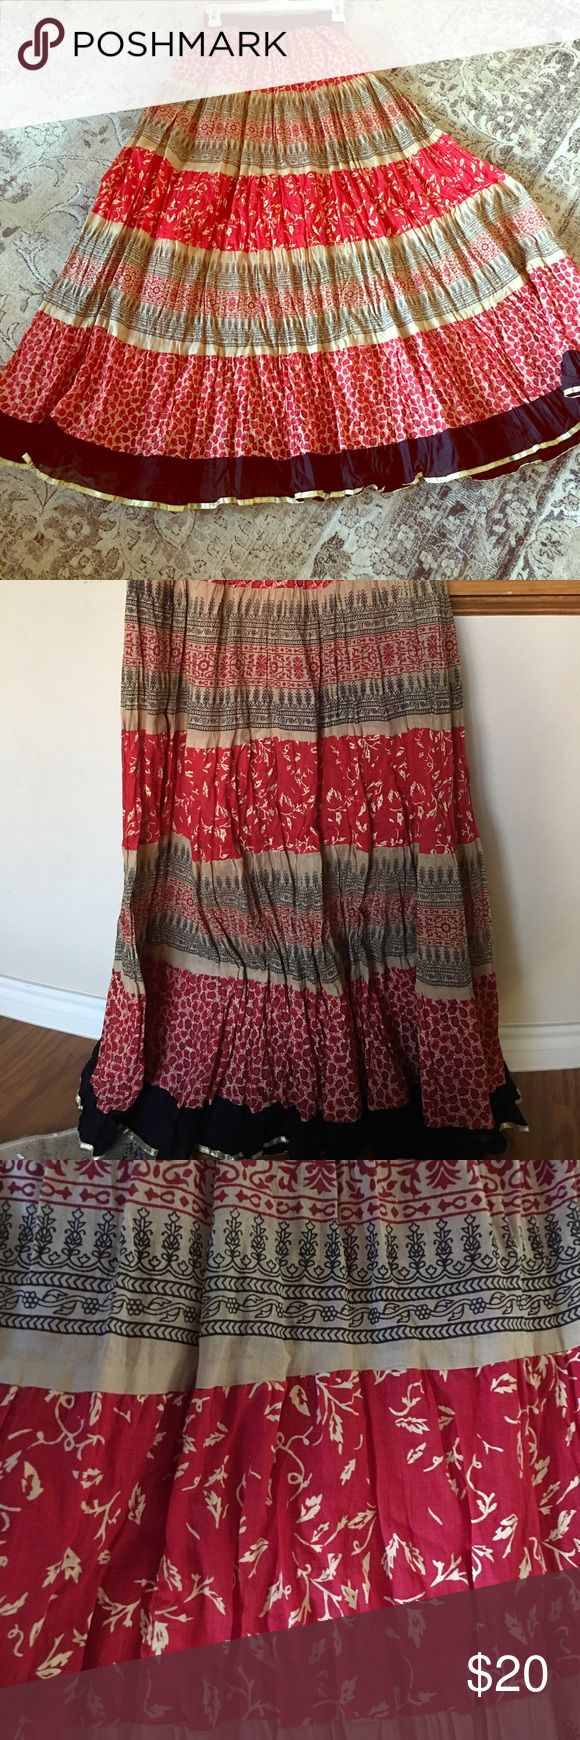 """BOGO 1/2 sale❗️Chic Indian skirt Absolutely gorgeous maxi skirt with lots of patterns. Material is naturally wrinkled. Very flowy and flattering all the way down to your toes!! Great work with white or black shirt. Purchased from India never worn. Size on it shows XL but it fits like a medium to large. Measures 41"""" long independent designer Skirts Maxi"""